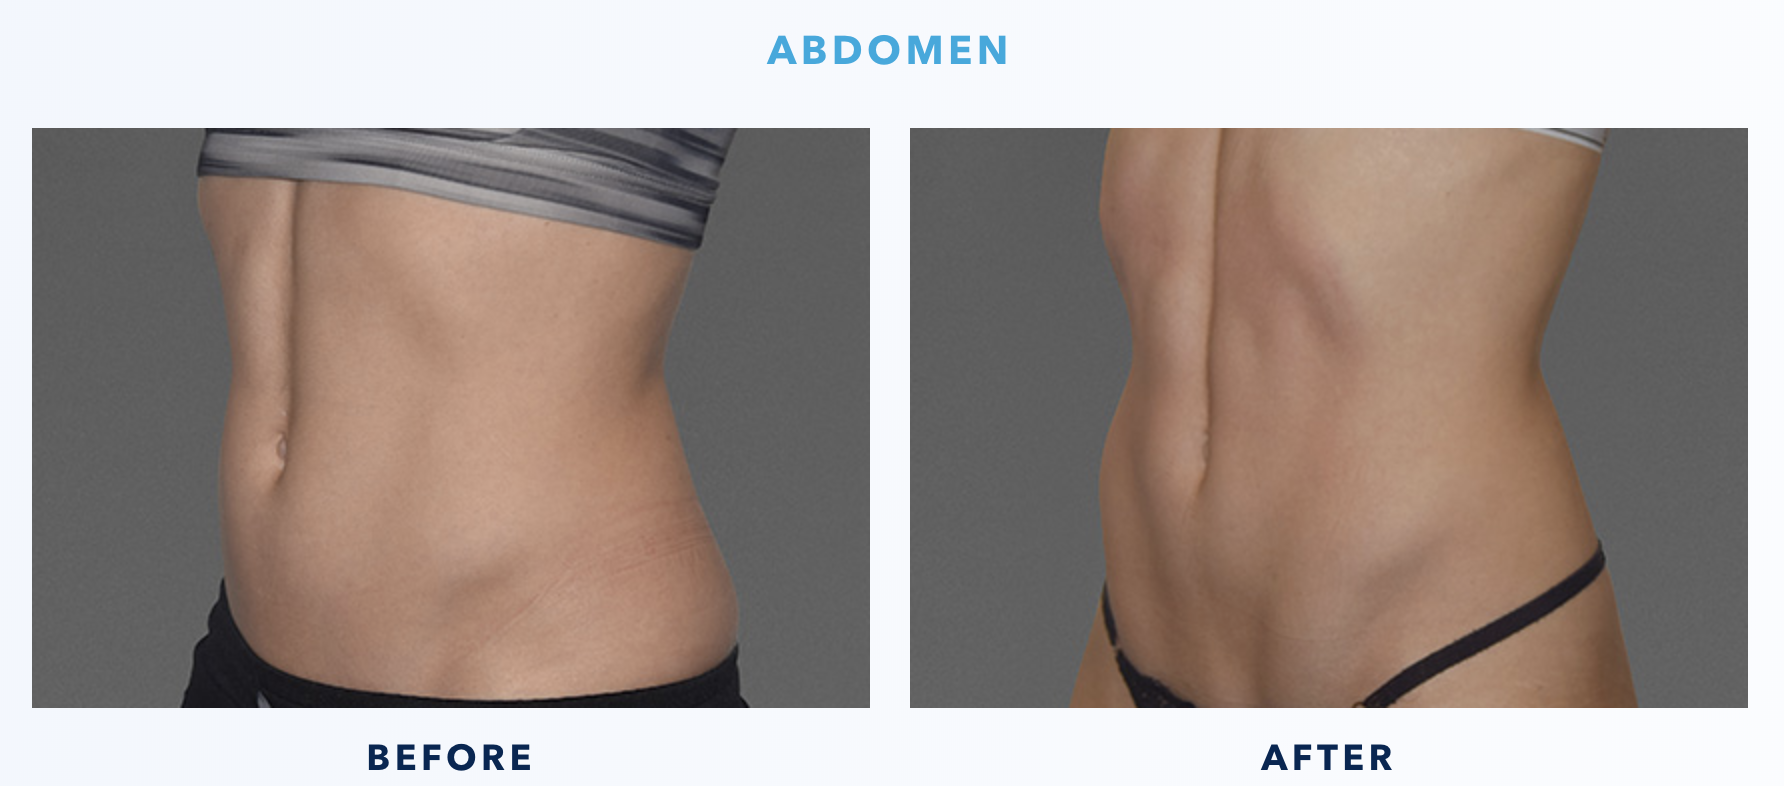 CoolTone Before & After Abdomen 3-2